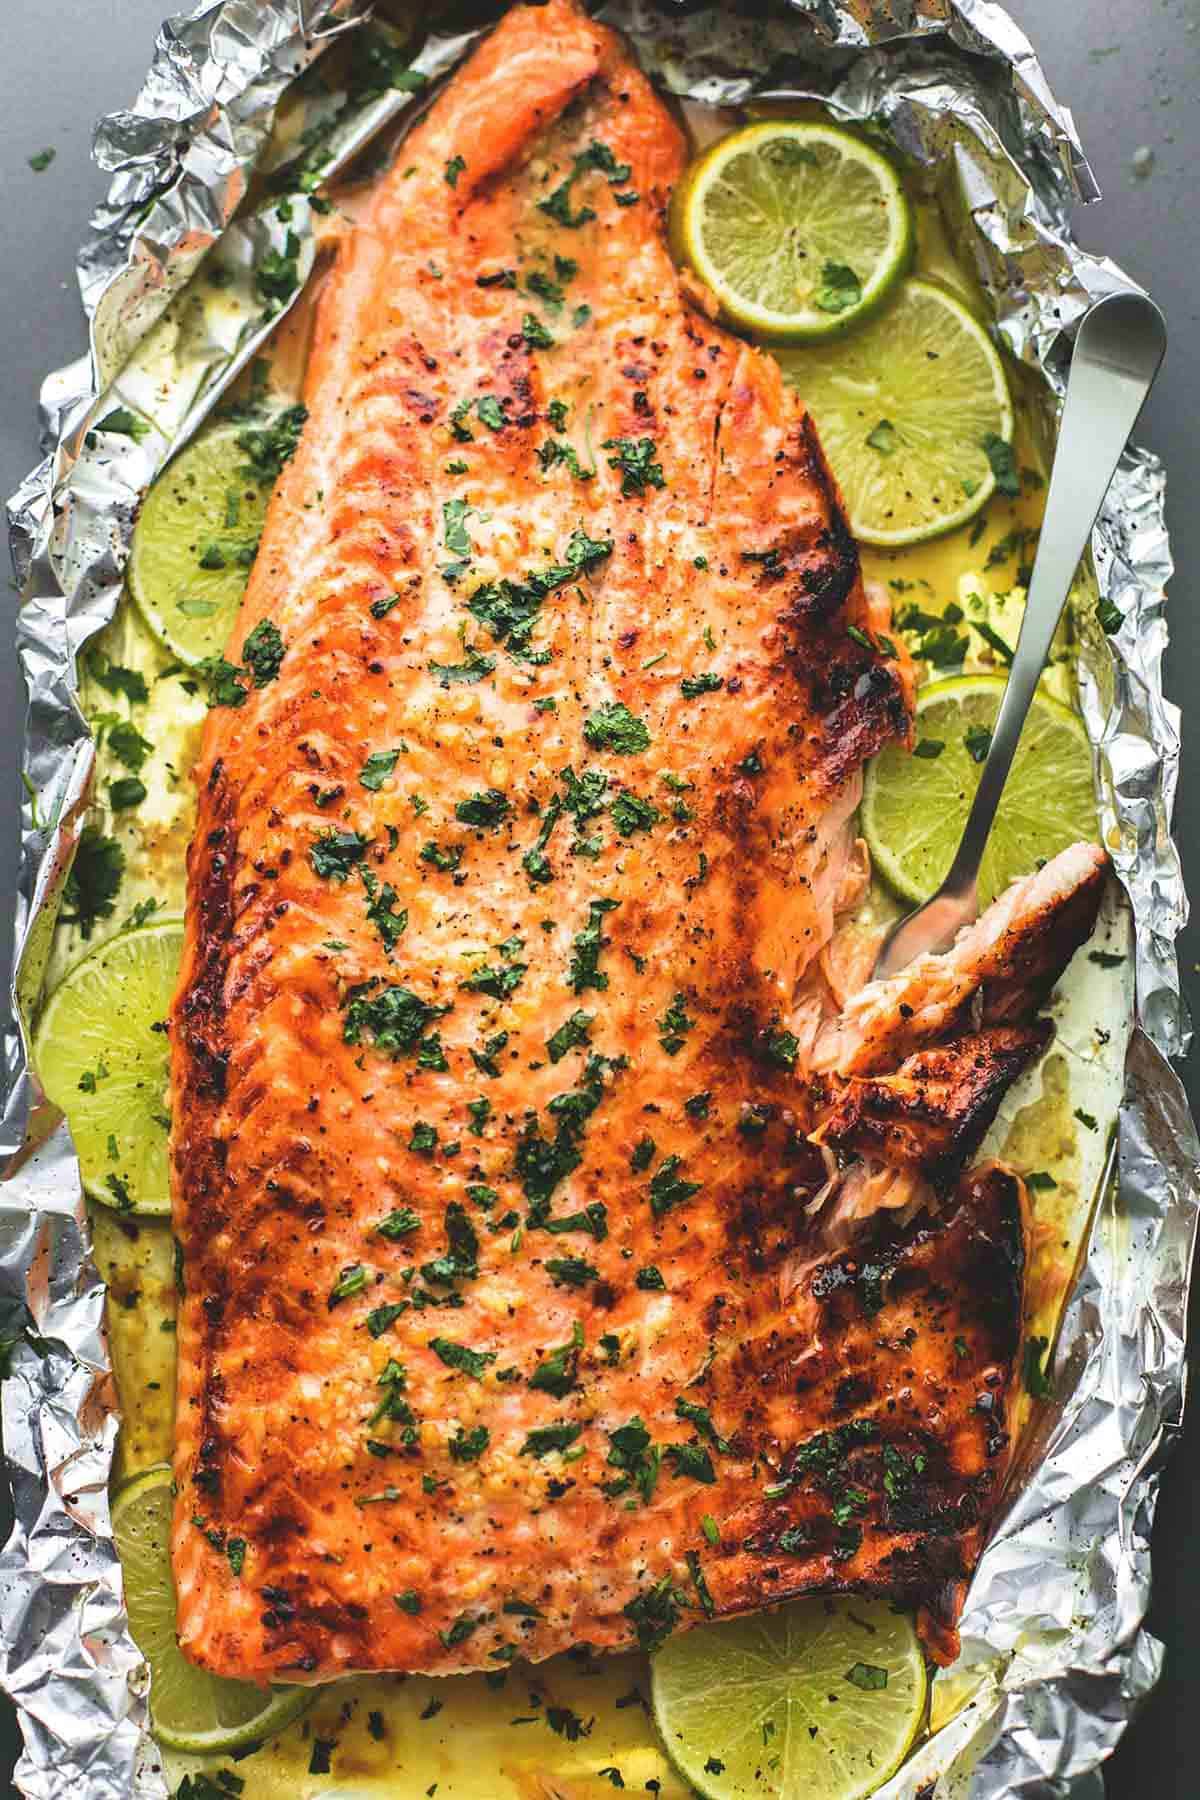 How to cook salmon in foil oven